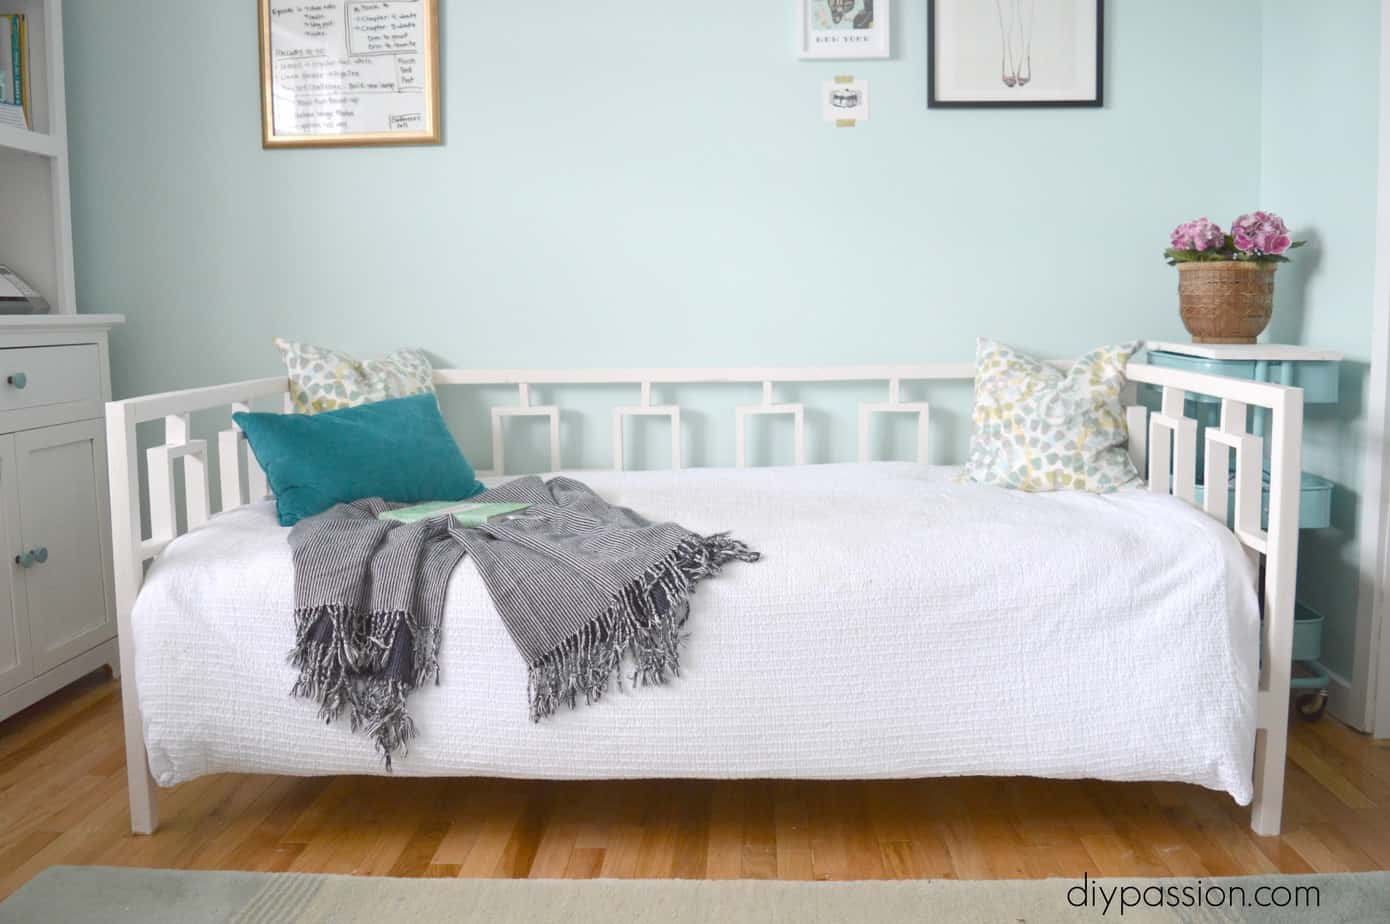 How To Build A West Elm Inspired Day Bed